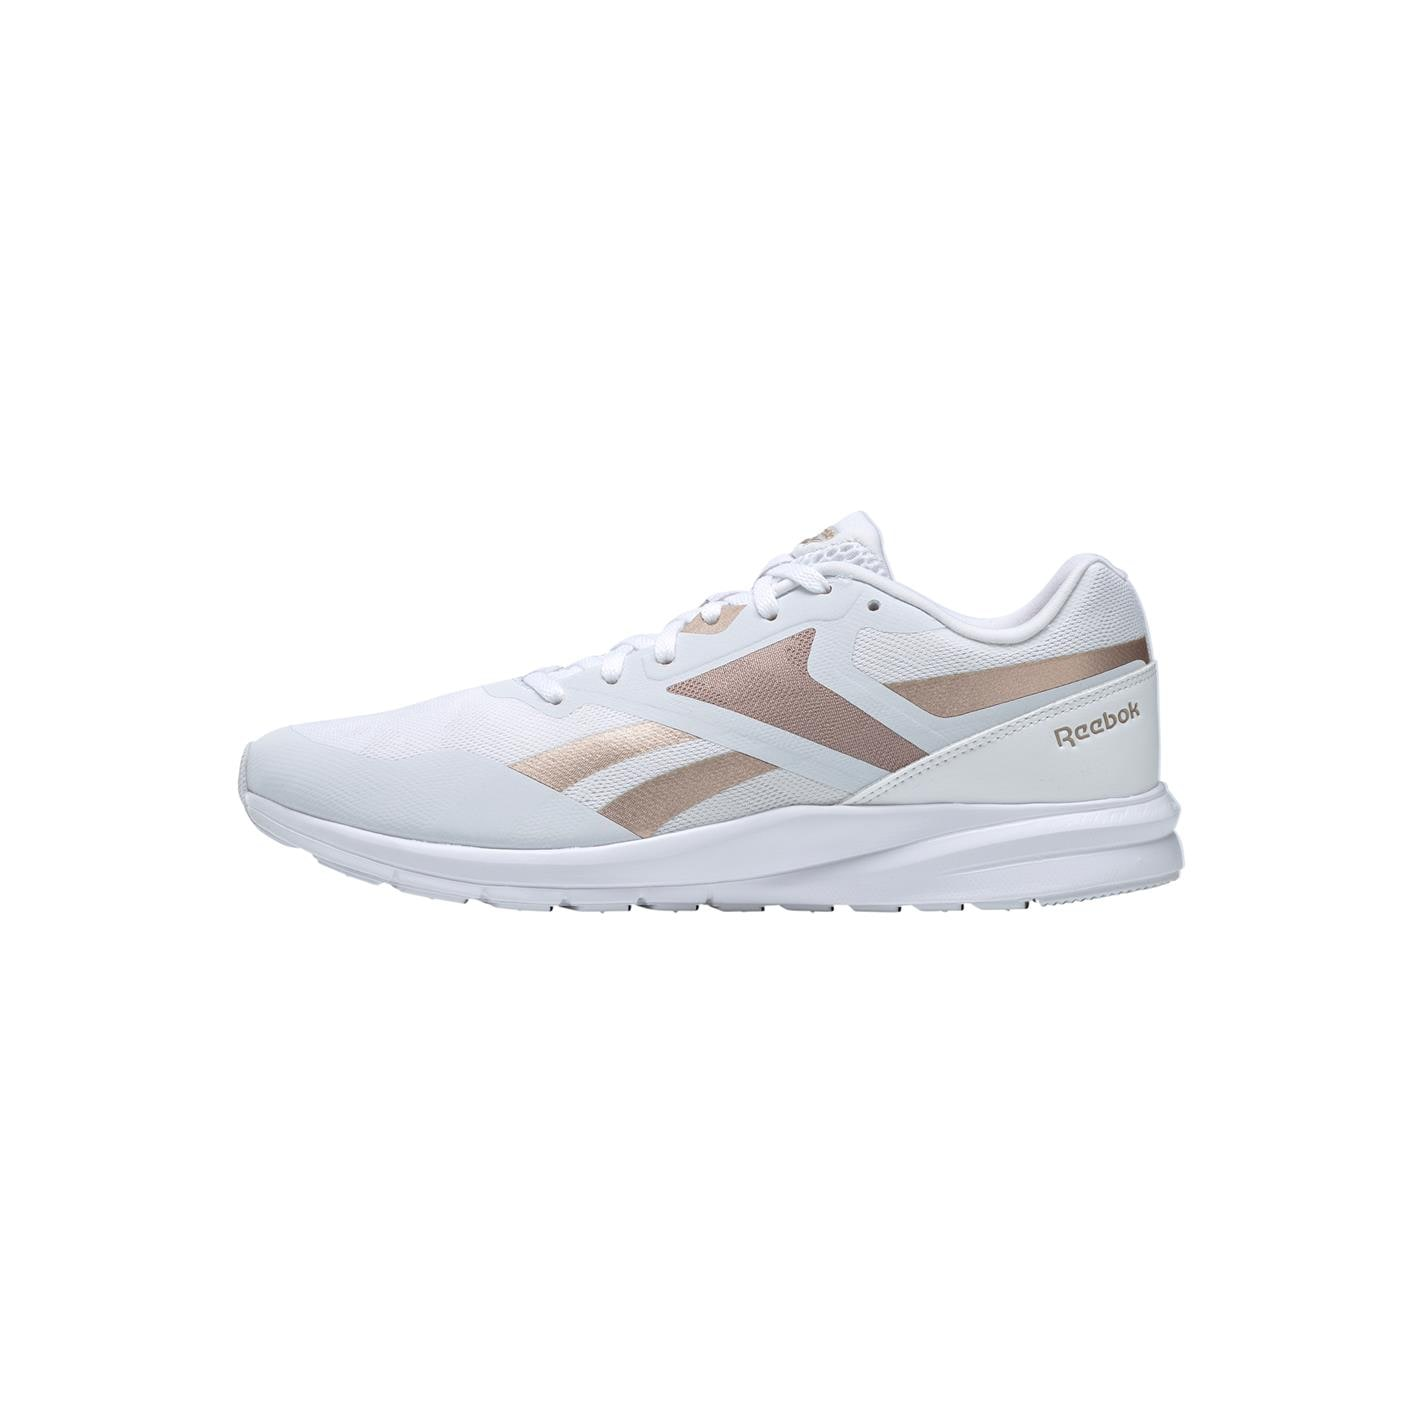 Reebok Reebok Runner 4.0 Shoes Womens White / Rose Gold / White